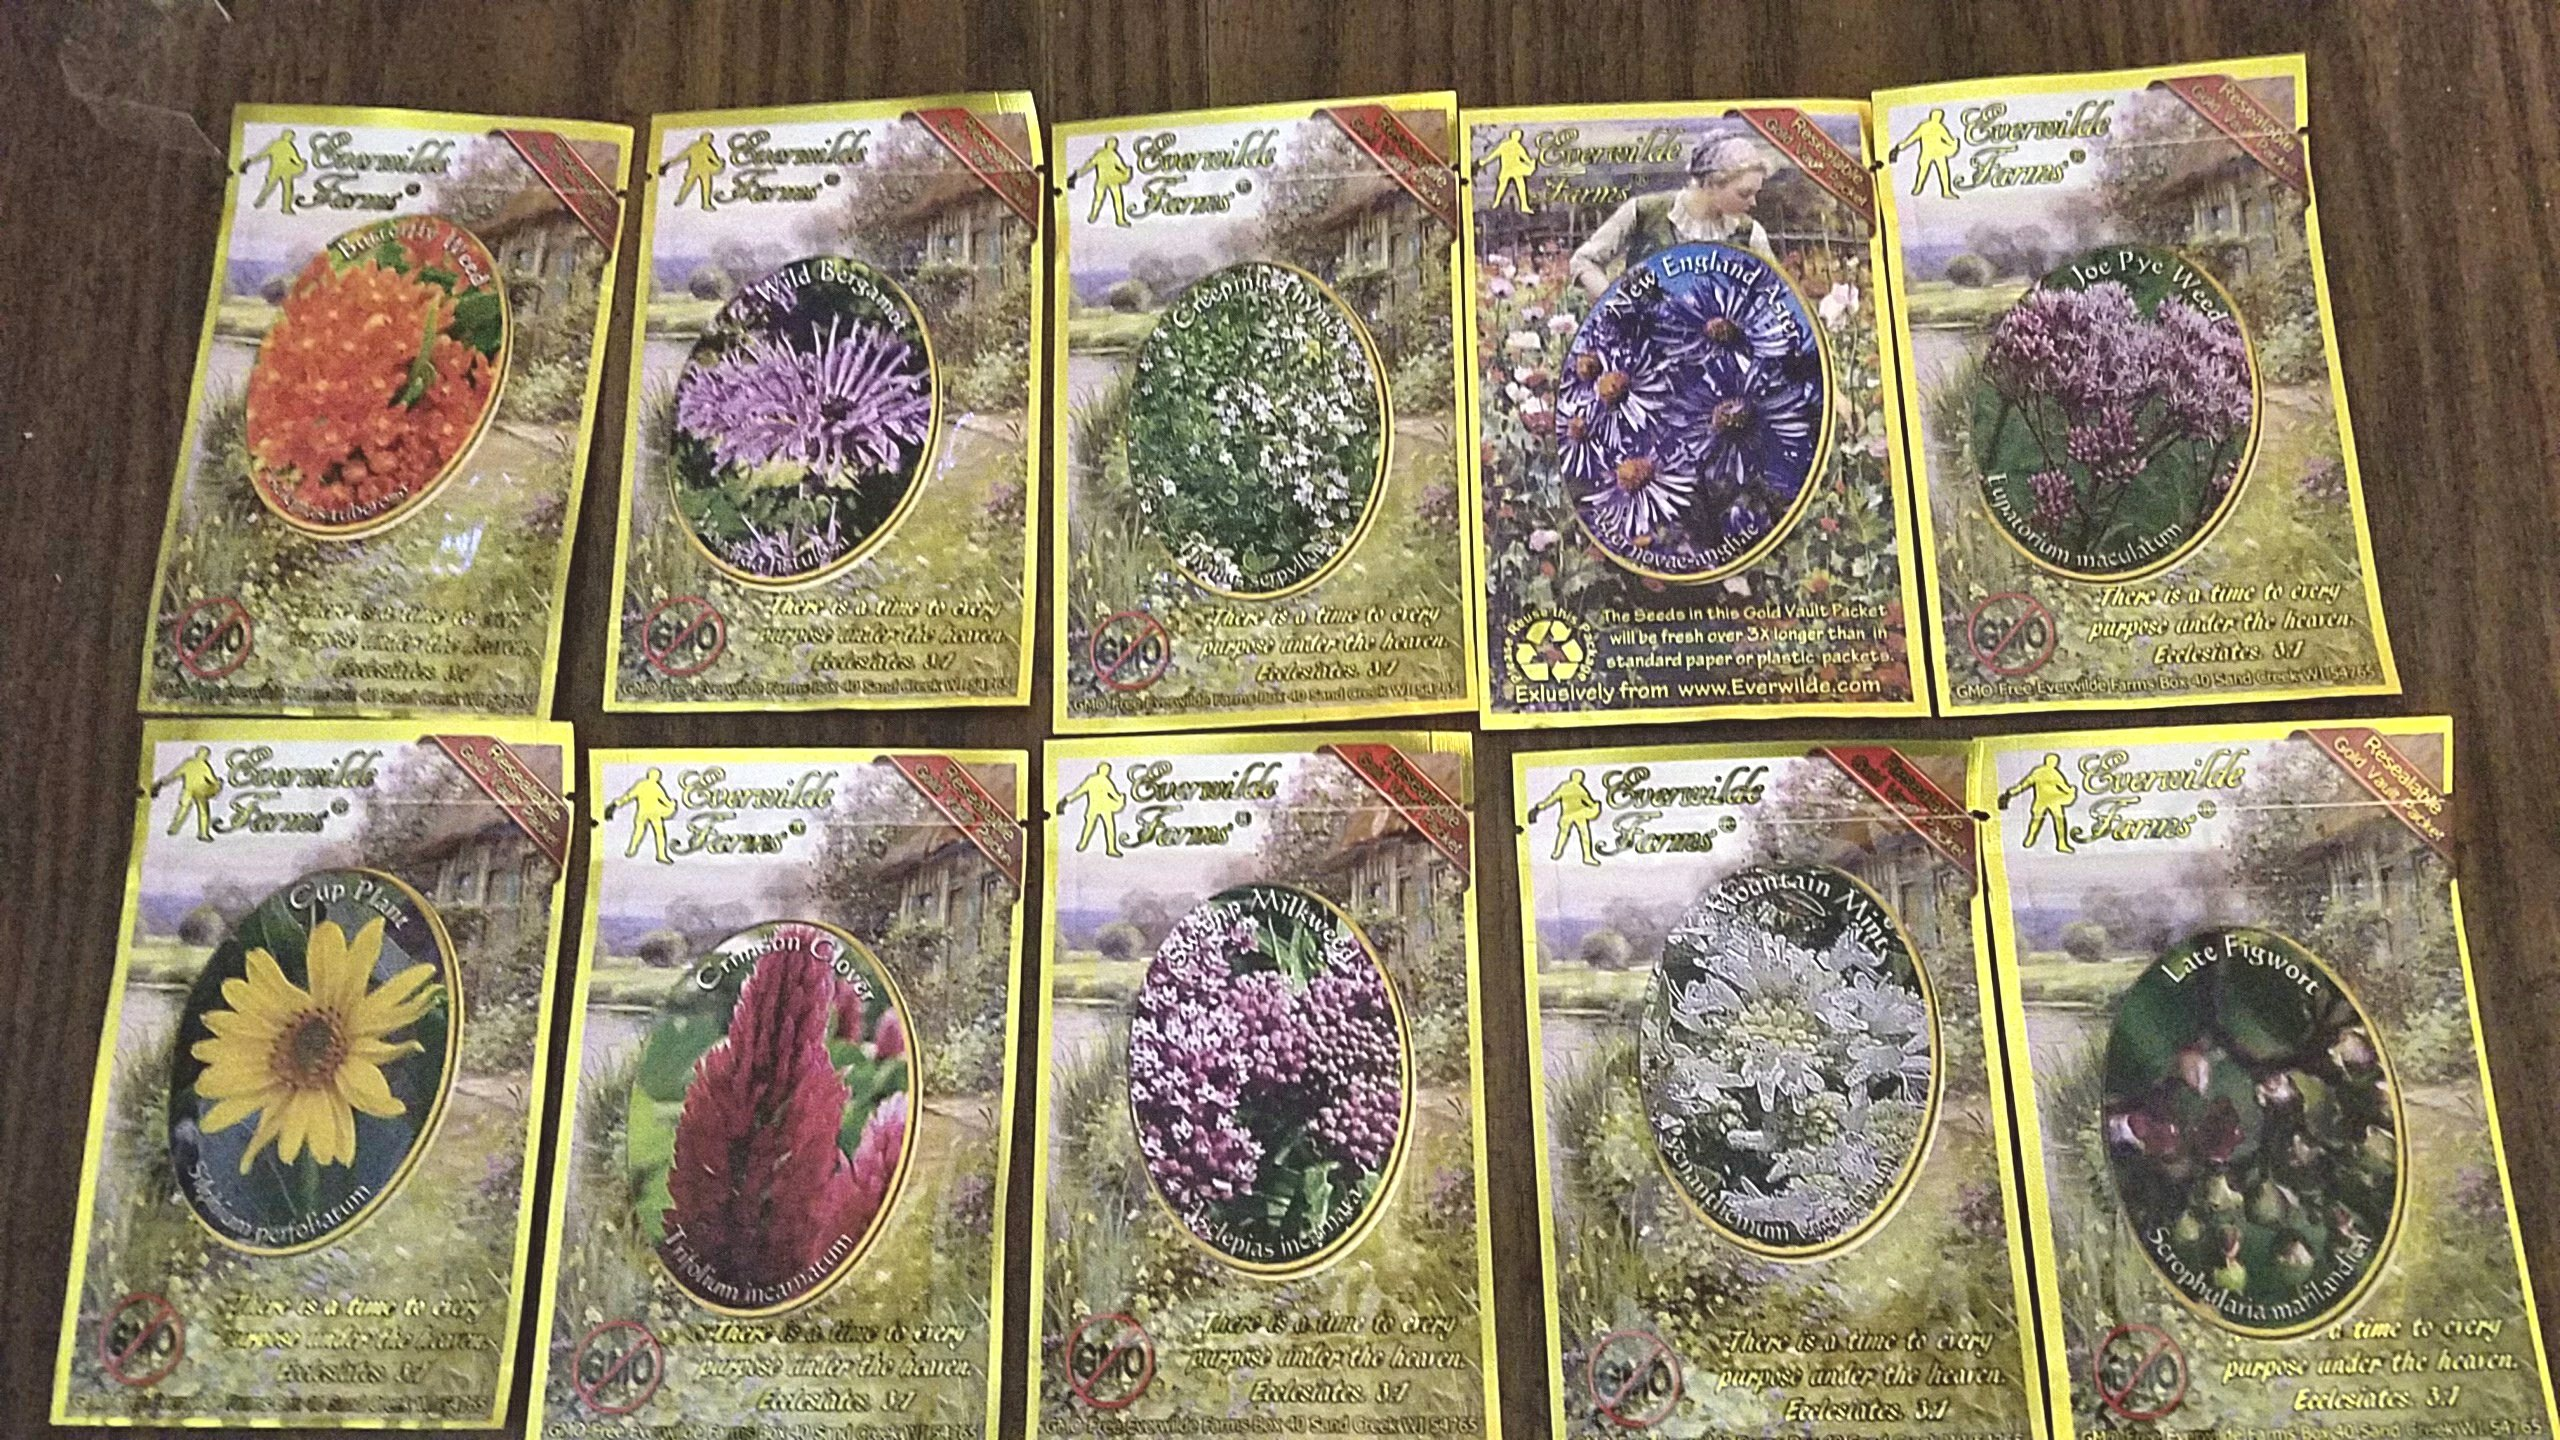 Wildflower seeds.